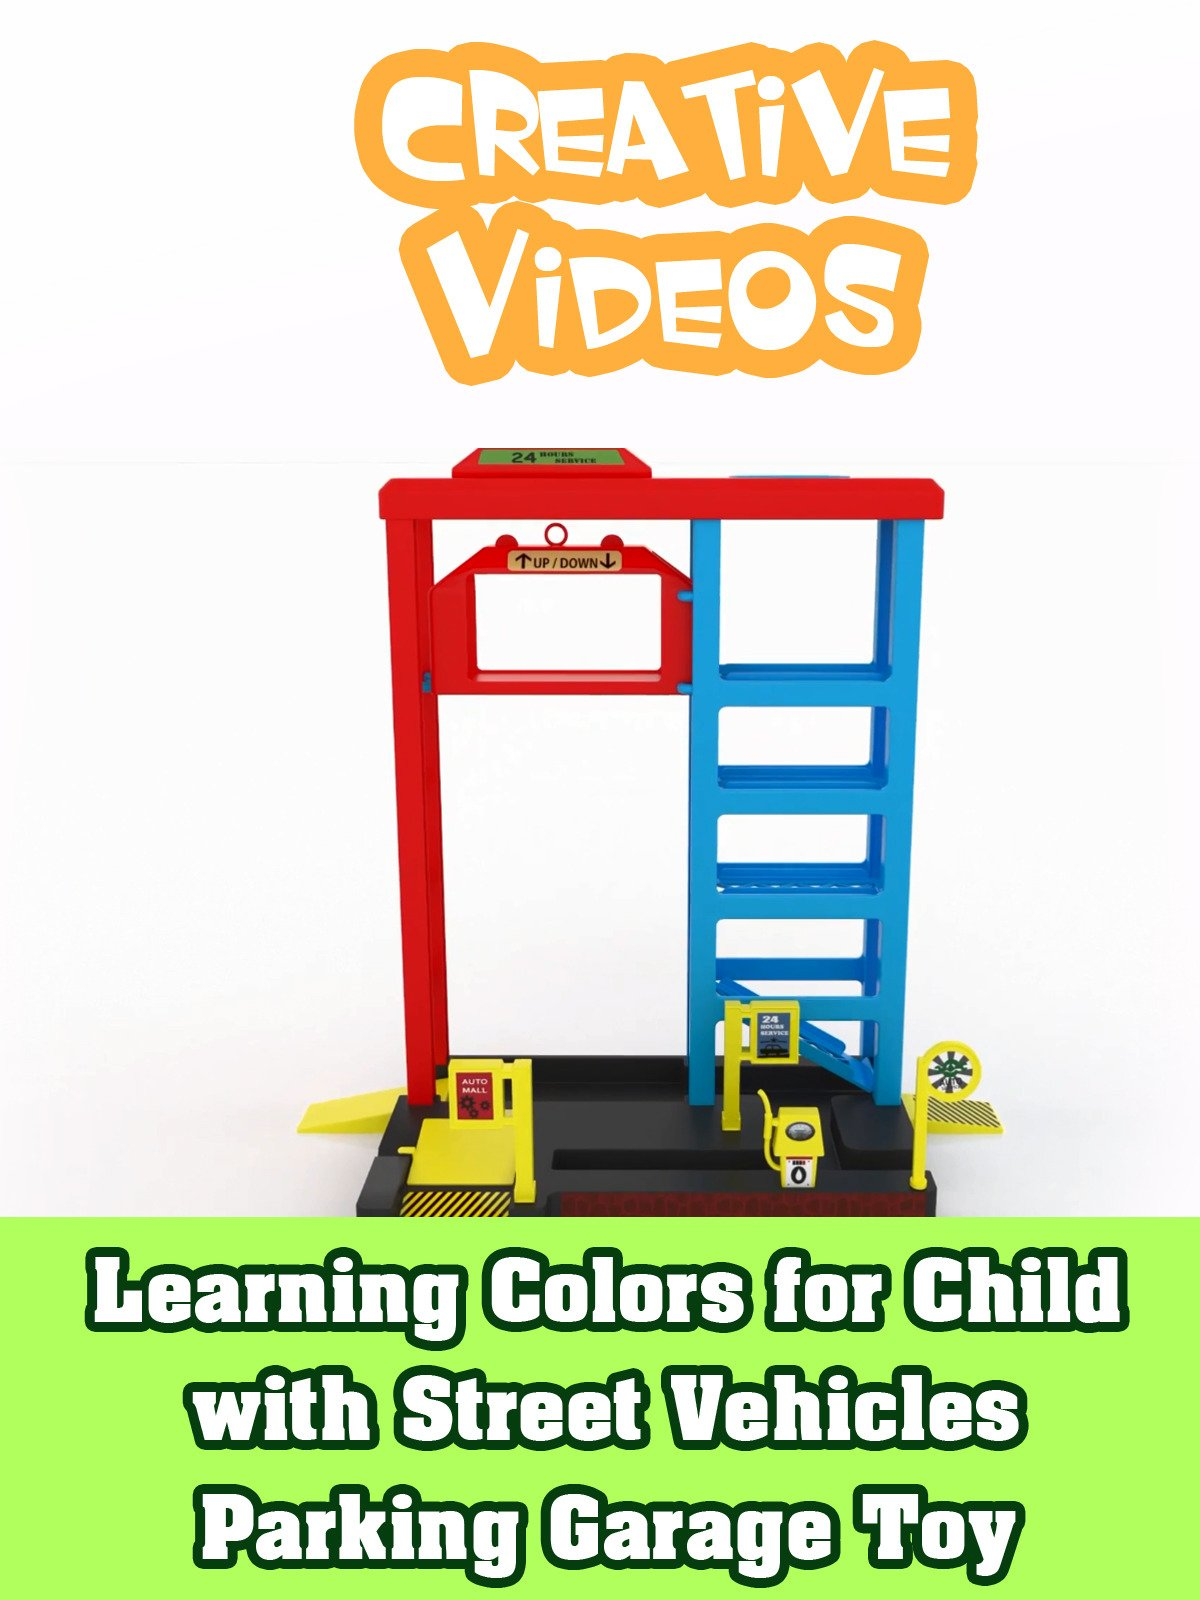 Learning Colors for Child with Street Vehicles Parking Garage Toy